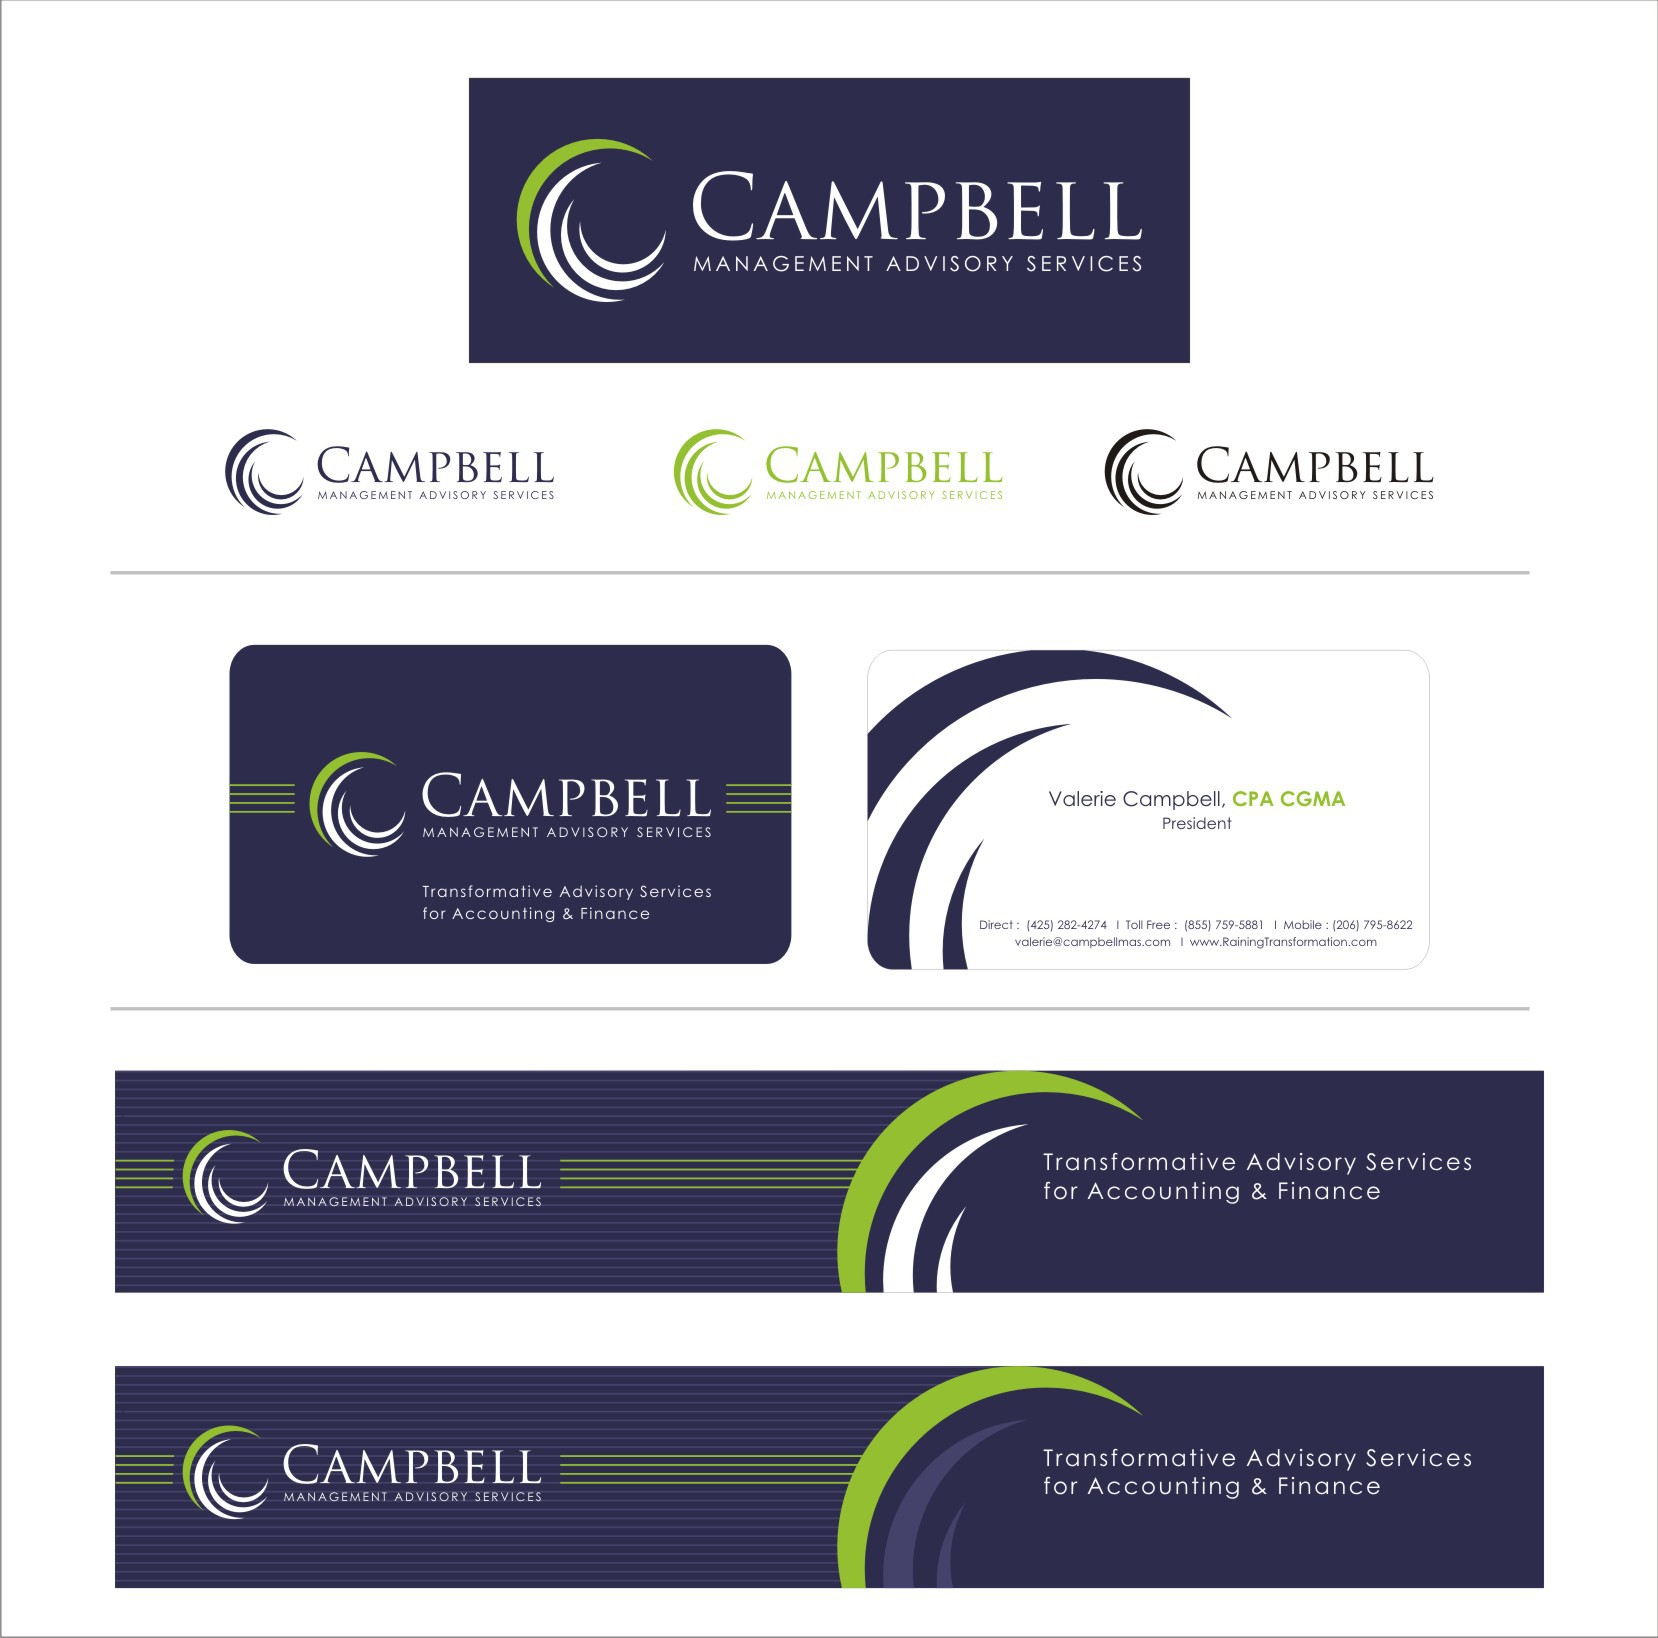 Campbell Management Advisory Services Seeking Transformative Consulting Logo (Get your design credit on my website)